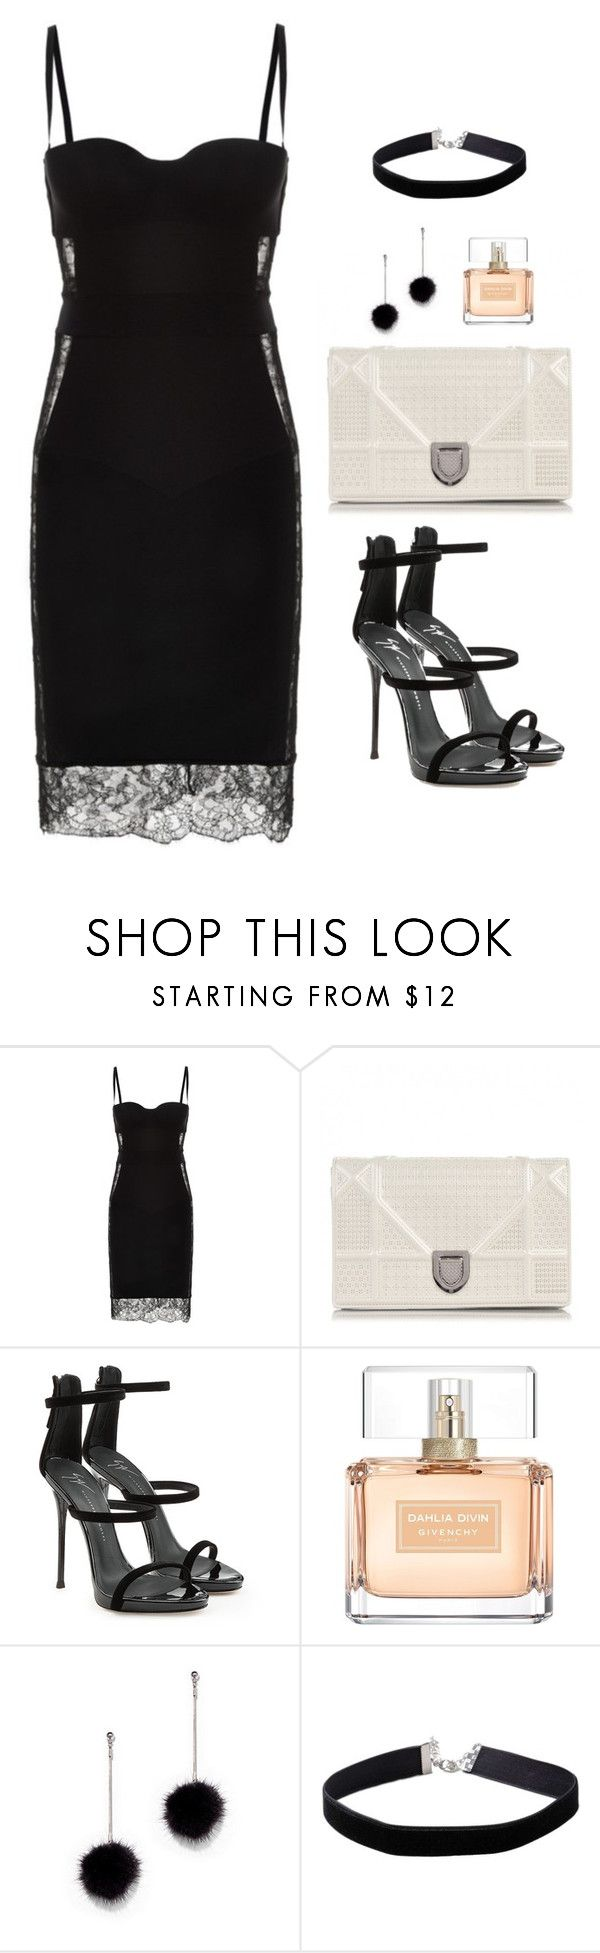 """""""Untitled #623"""" by hayleyl22 ❤ liked on Polyvore featuring La Perla, Christian Dior, Giuseppe Zanotti, Givenchy, New York & Company and Miss Selfridge"""